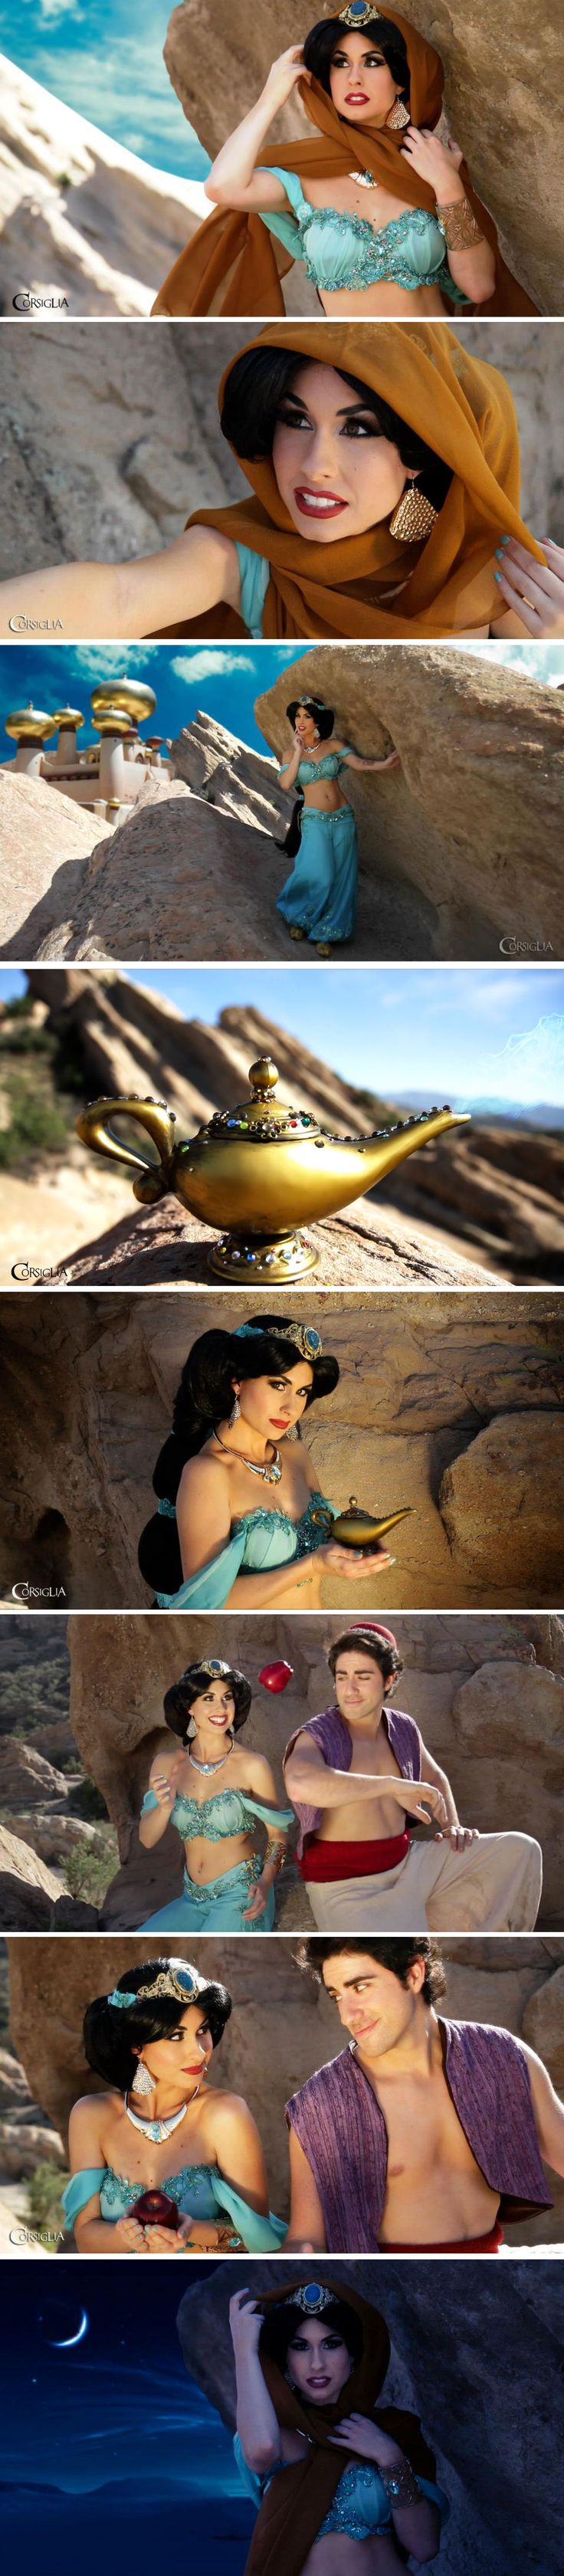 Disney's PRINCESS JASMINE & ALADDIN cosplay